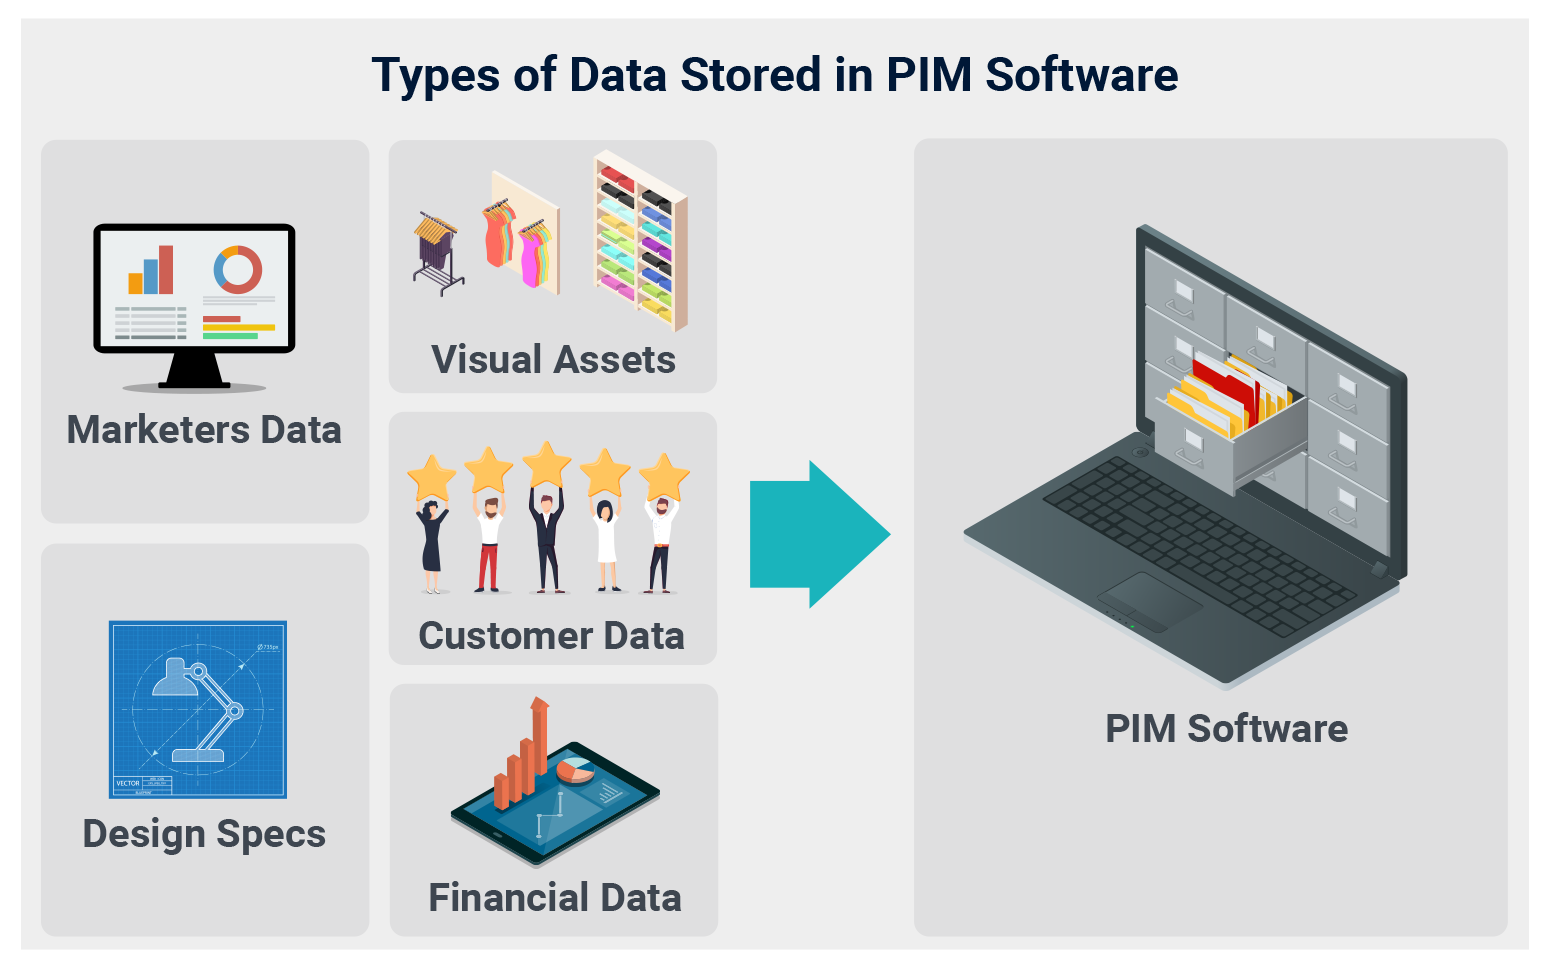 Data Stored in Product Information Management (PIM) Software